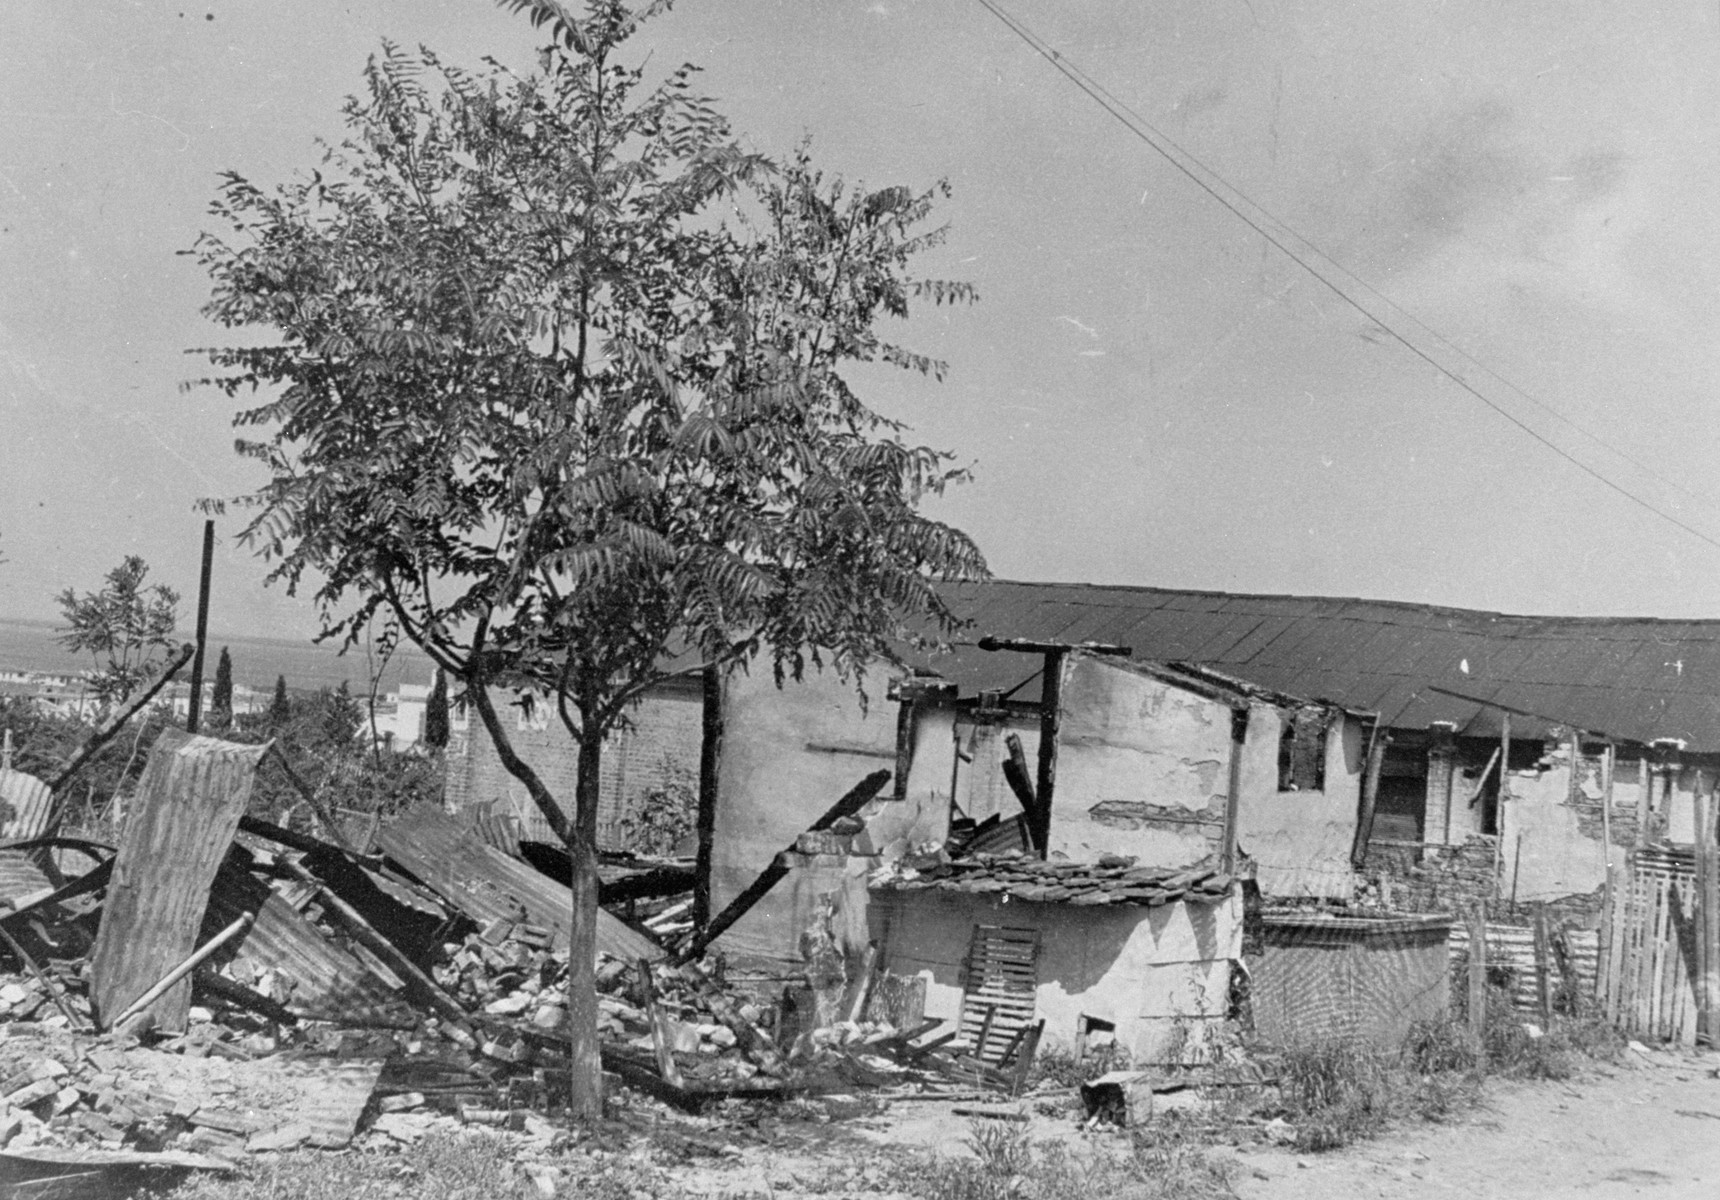 Remnants of a wooden barracks in the Campbell camp after the pogrom of June 29th.